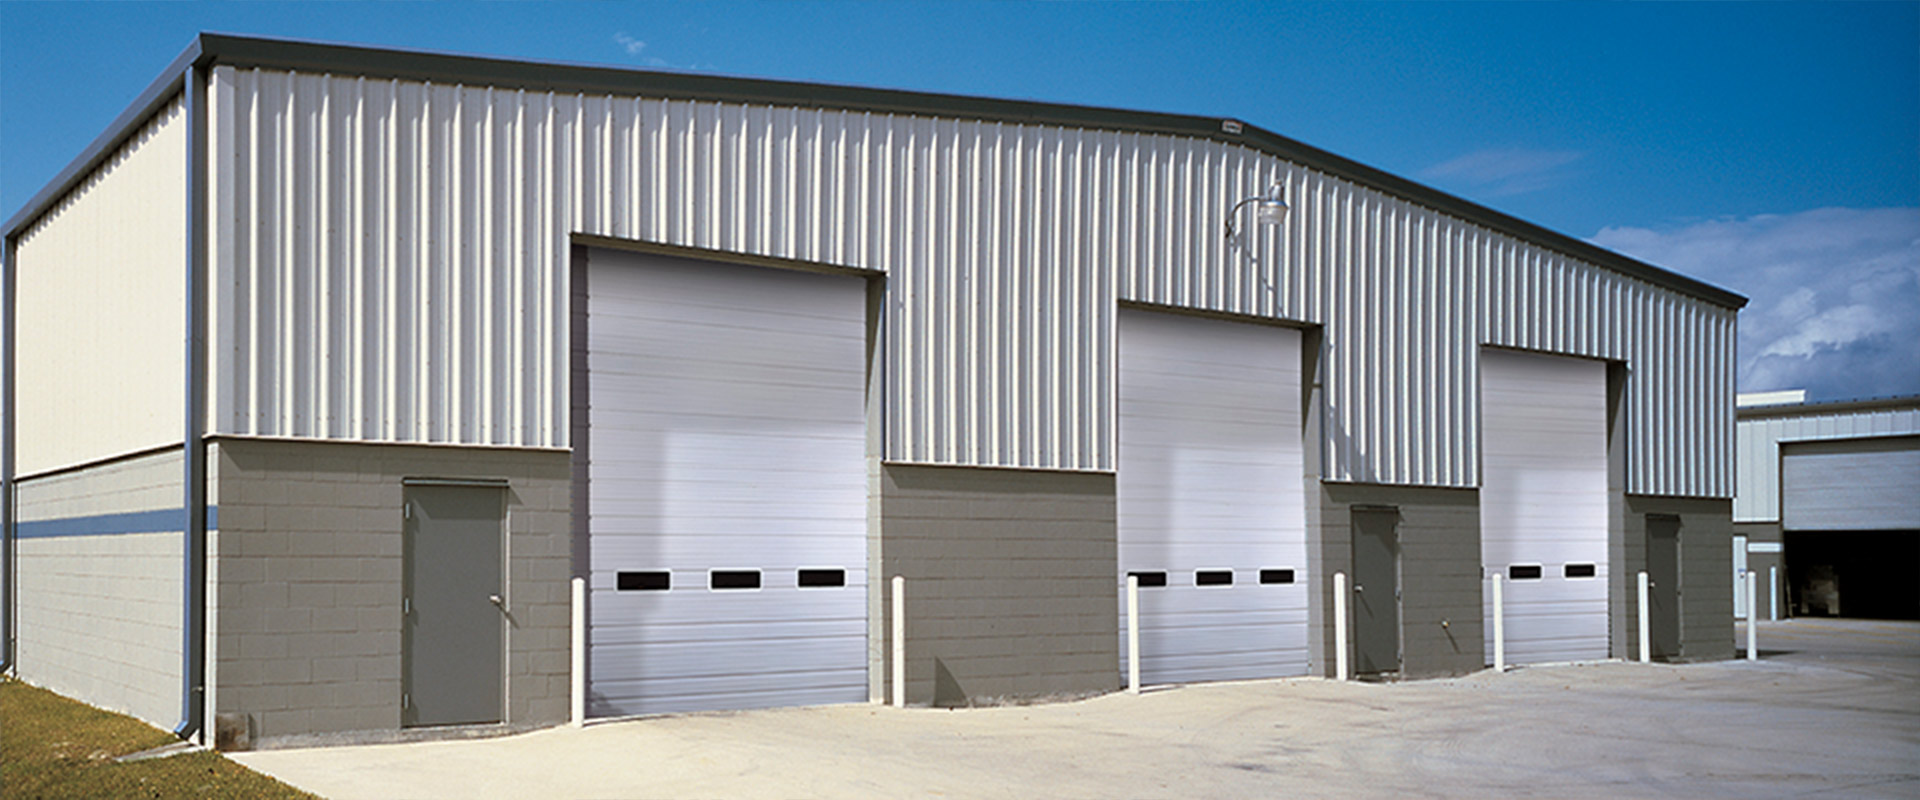 Garage Doors, Commercial Garage Door Installation & Repair